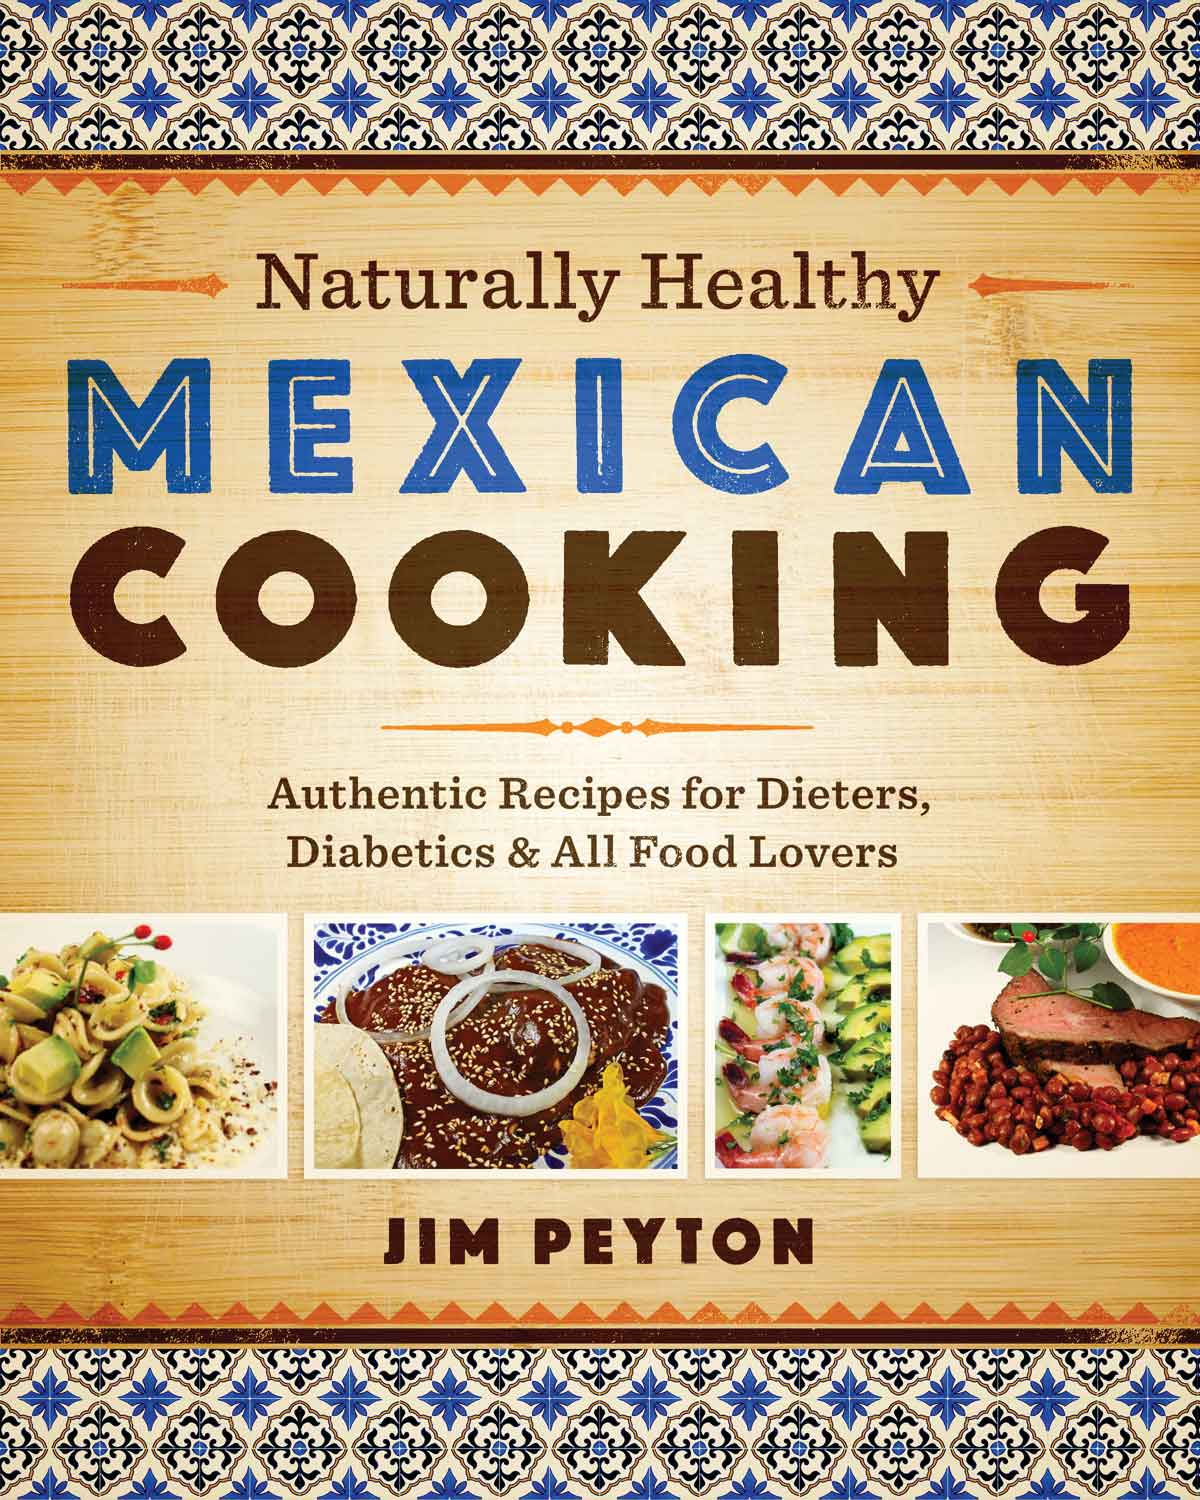 Naturally healthy mexican cooking authentic recipes for dieters naturally healthy mexican cooking forumfinder Images